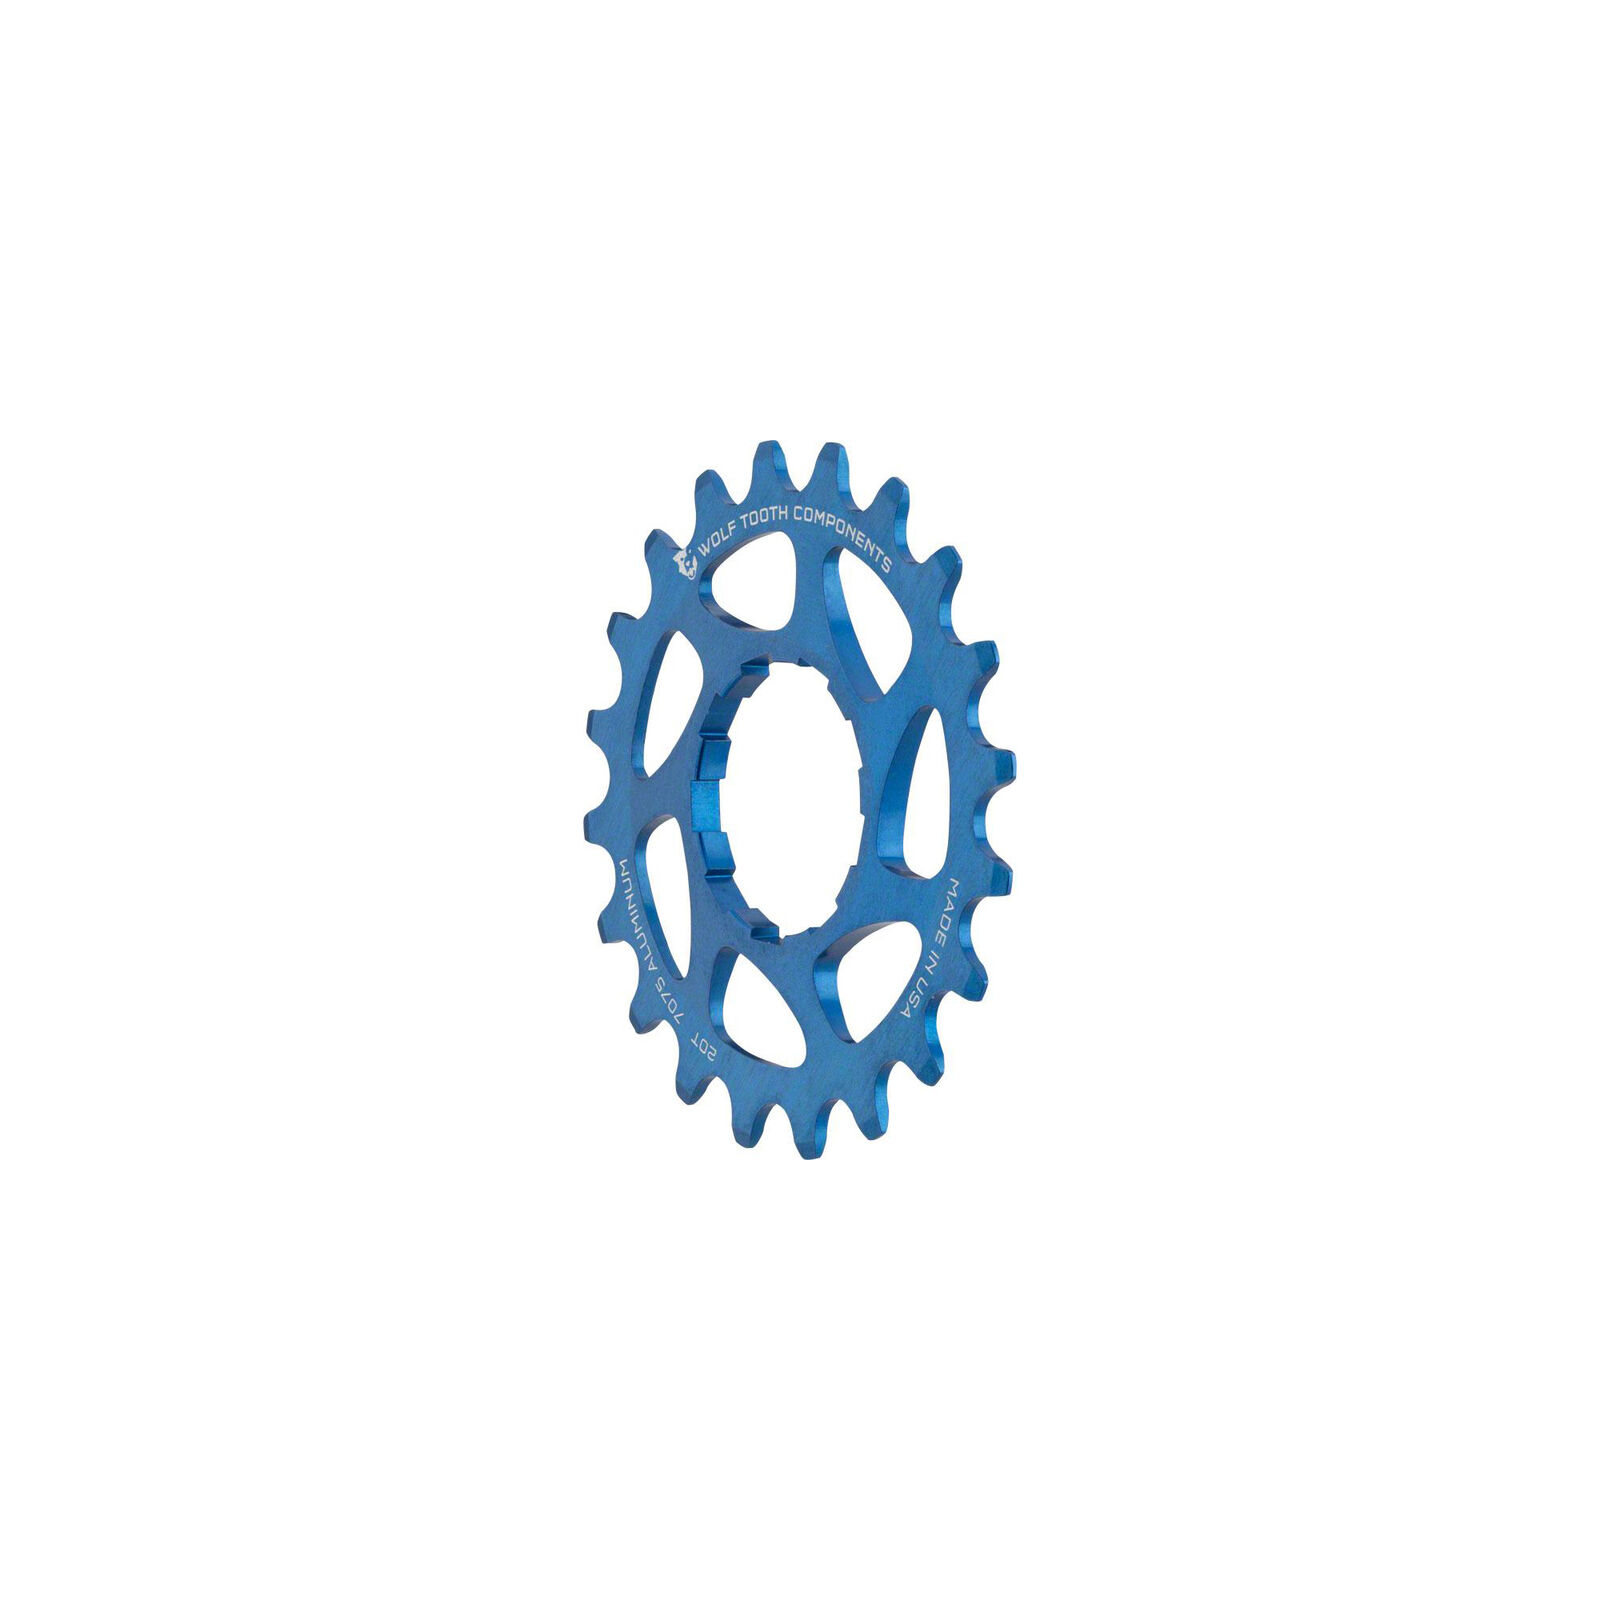 Wolf Tooth  Components Single Speed Bike 20t Cog 3 32  bluee  factory outlet